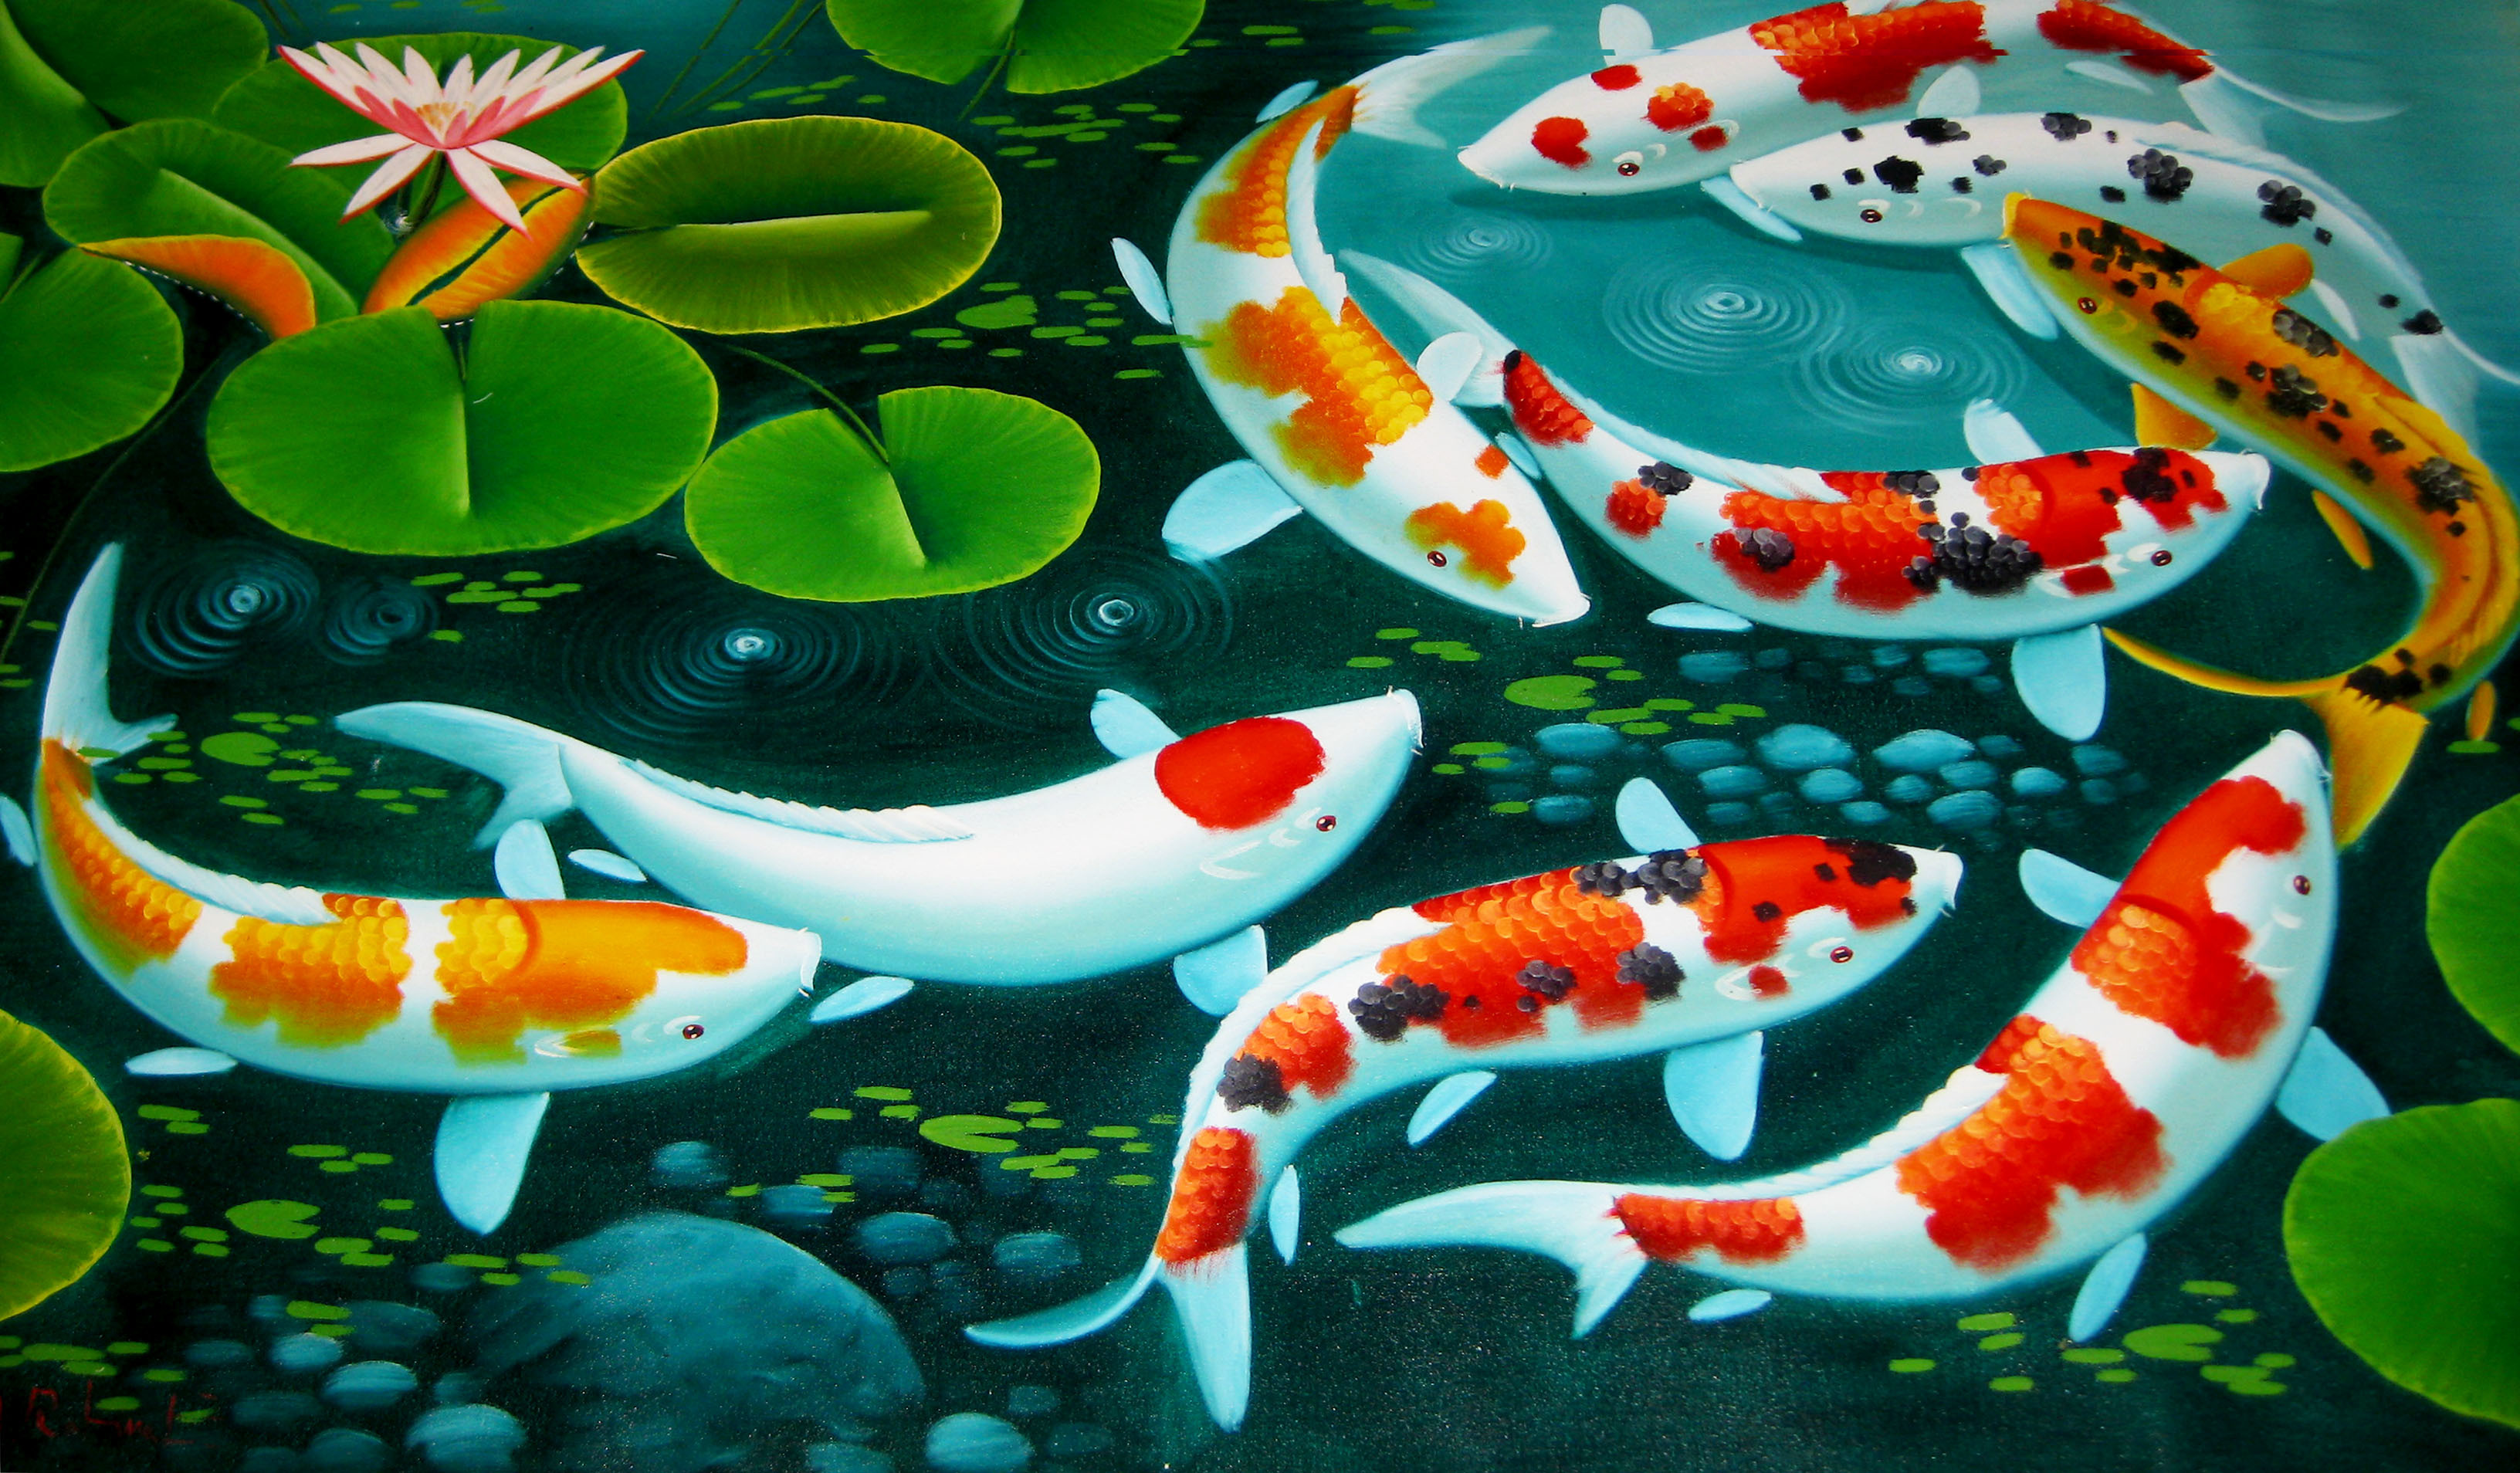 Hd koi fish wallpaper 54 images for Pictures of coy fish